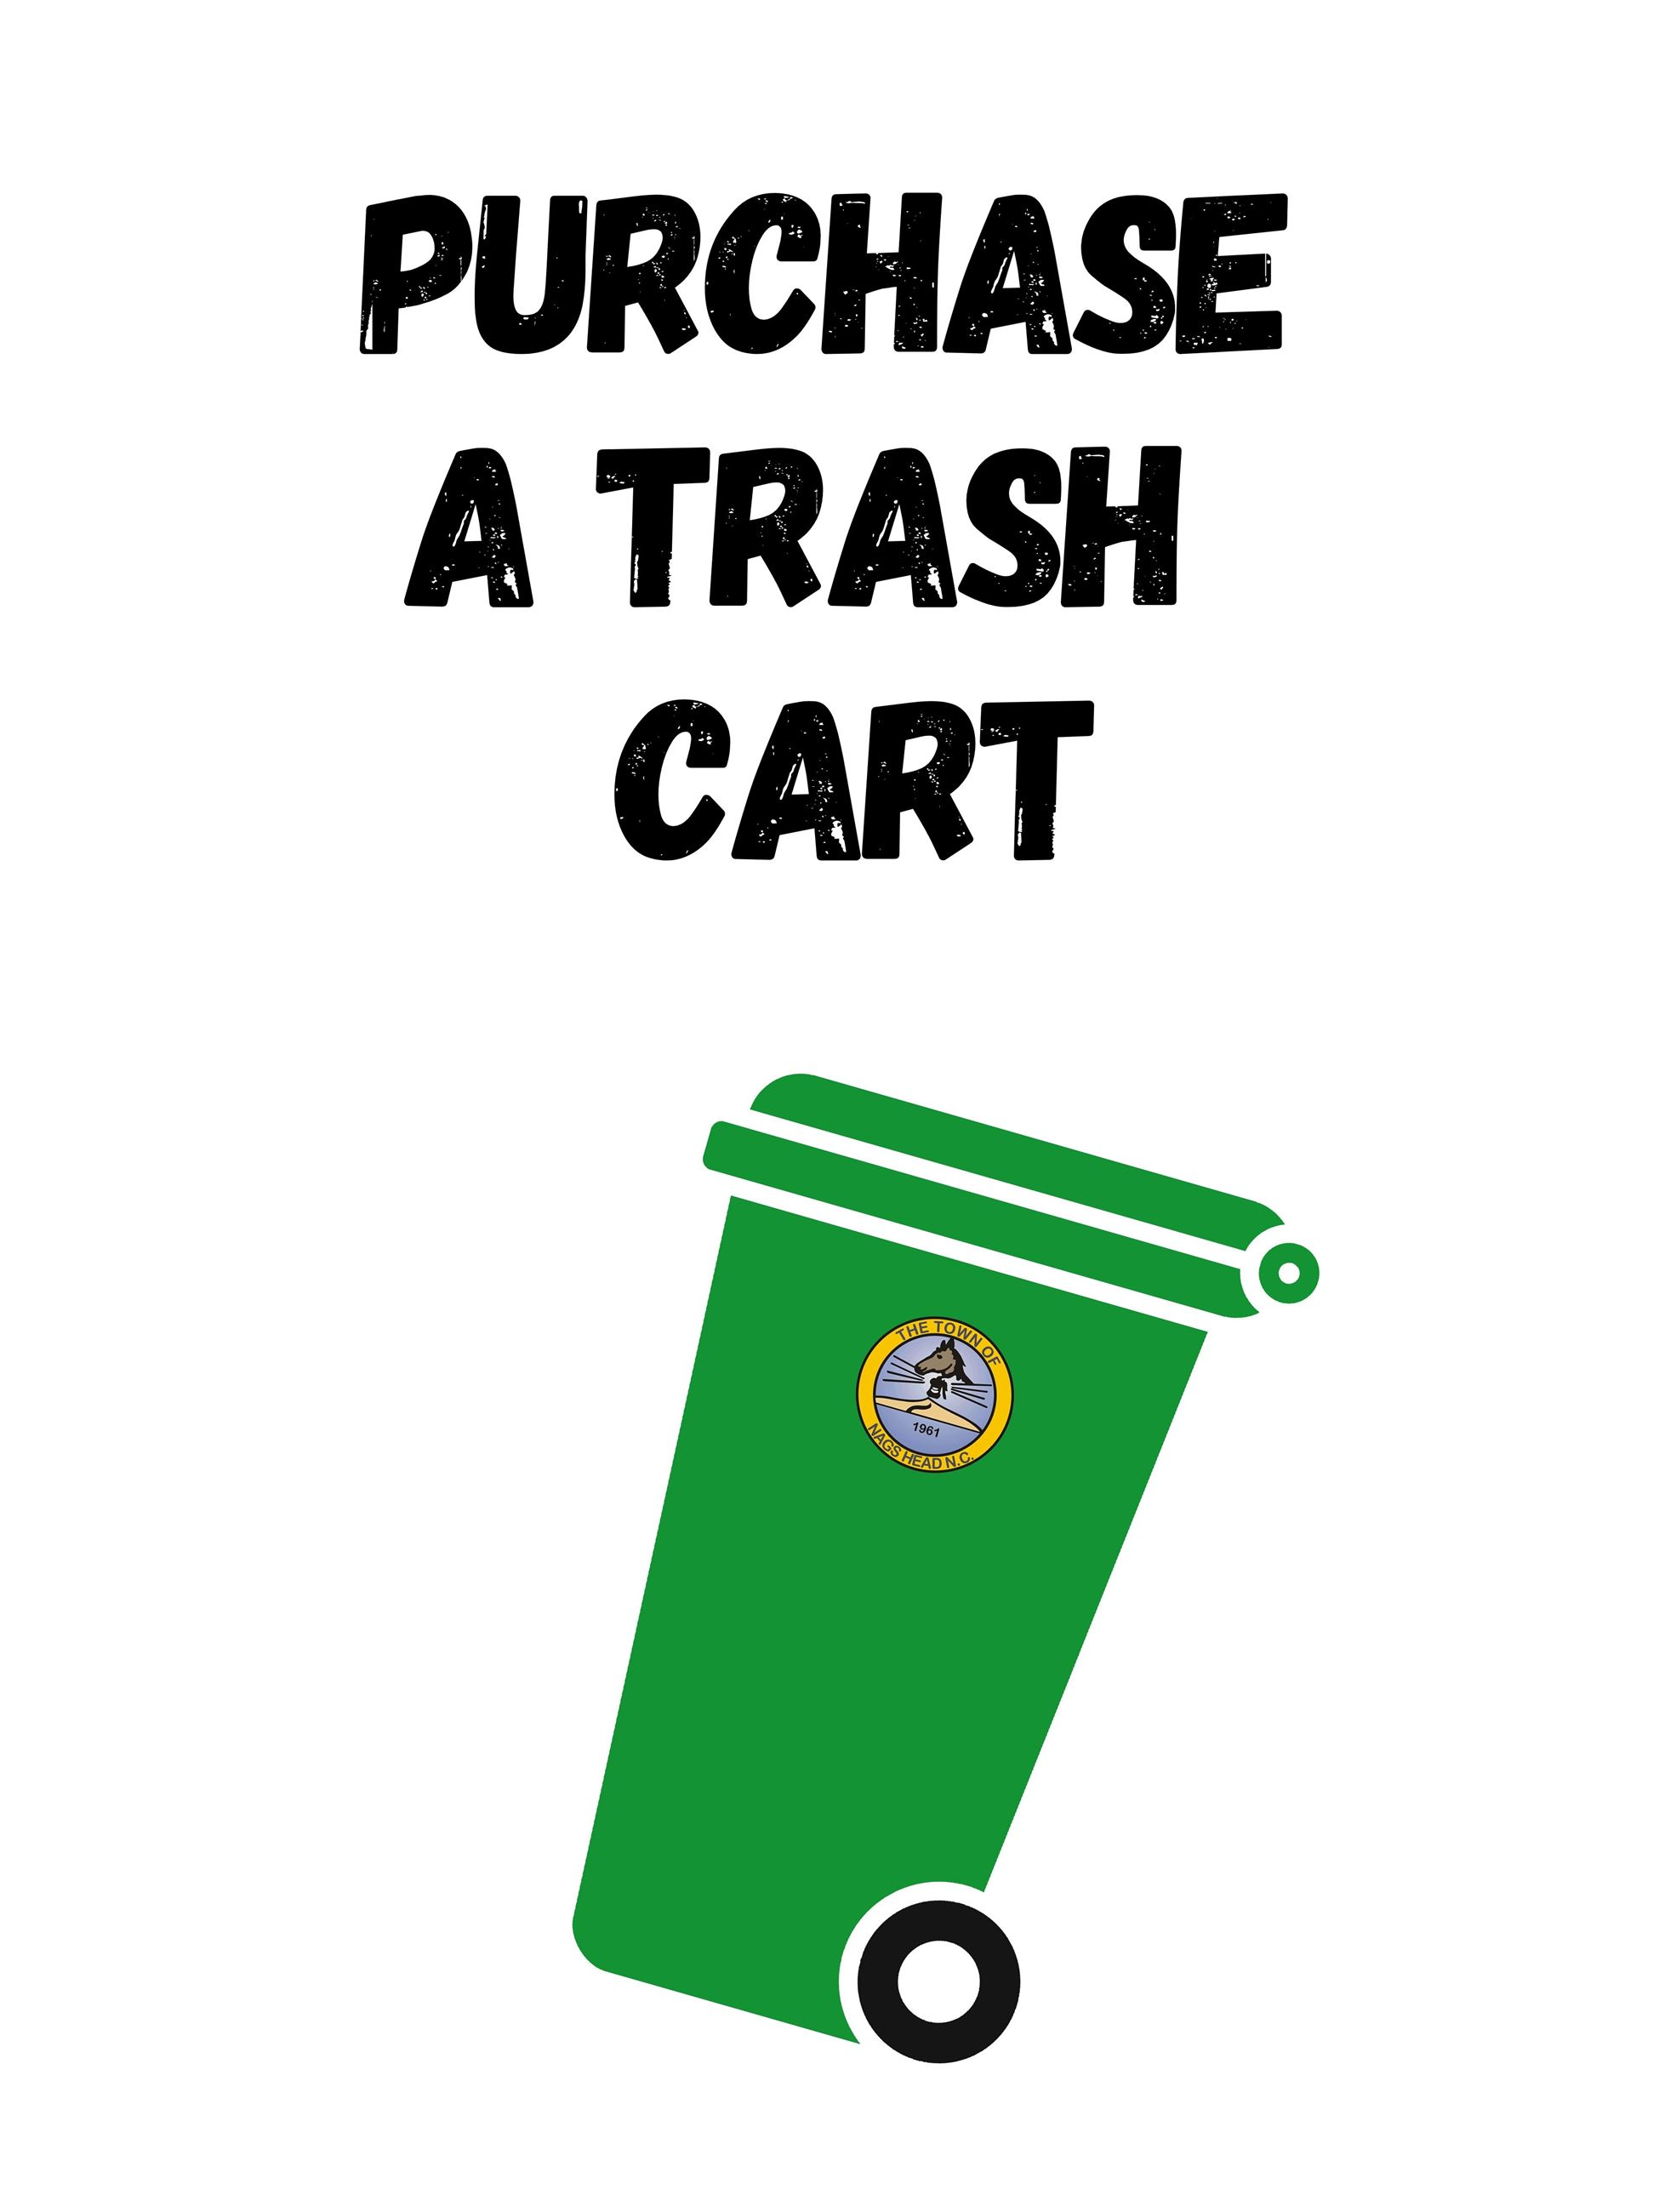 Purchase a Trash Cart Opens in new window